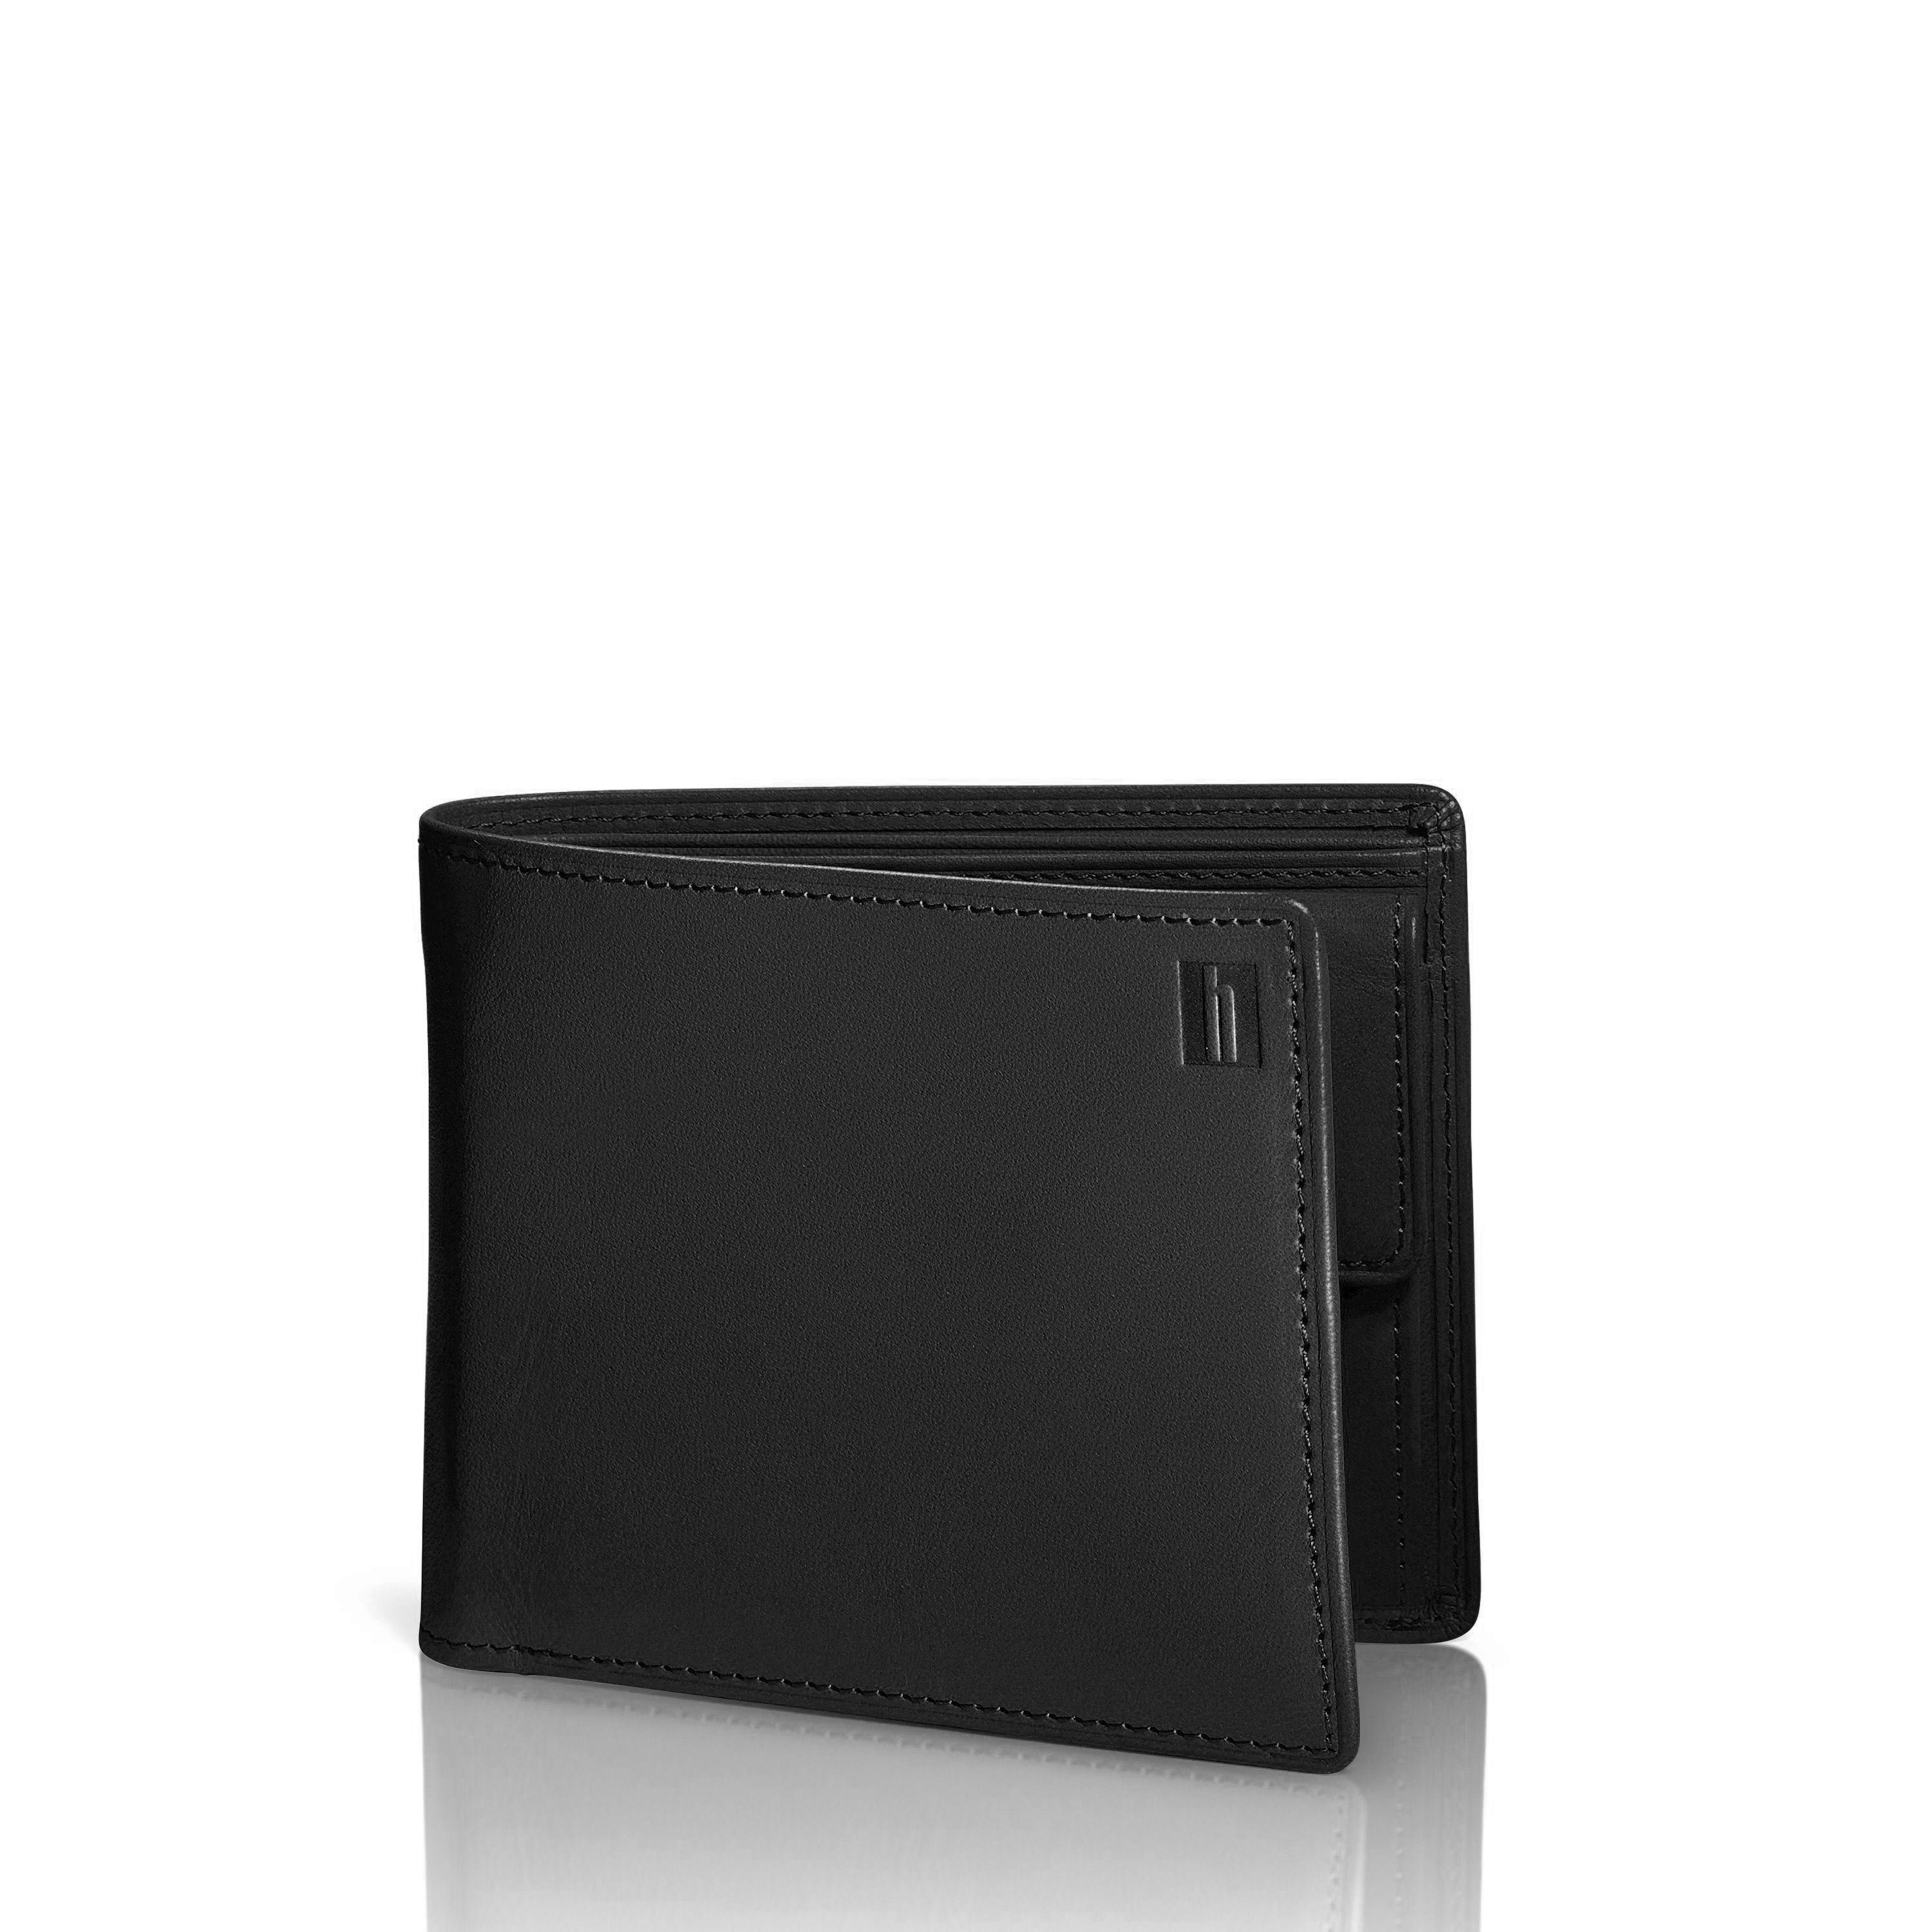 "Vegetable tanned leather. Heat burnished details. Finely finished stitching. Durable nylon lining. 4 card slots. Two bill compartments. Stows cash, cards and receipts in a slim compact design. Currency pocket. Weight: 0.36 lbs. Body Dimensions: 4.5"" x 3.75"" x 1.0"""